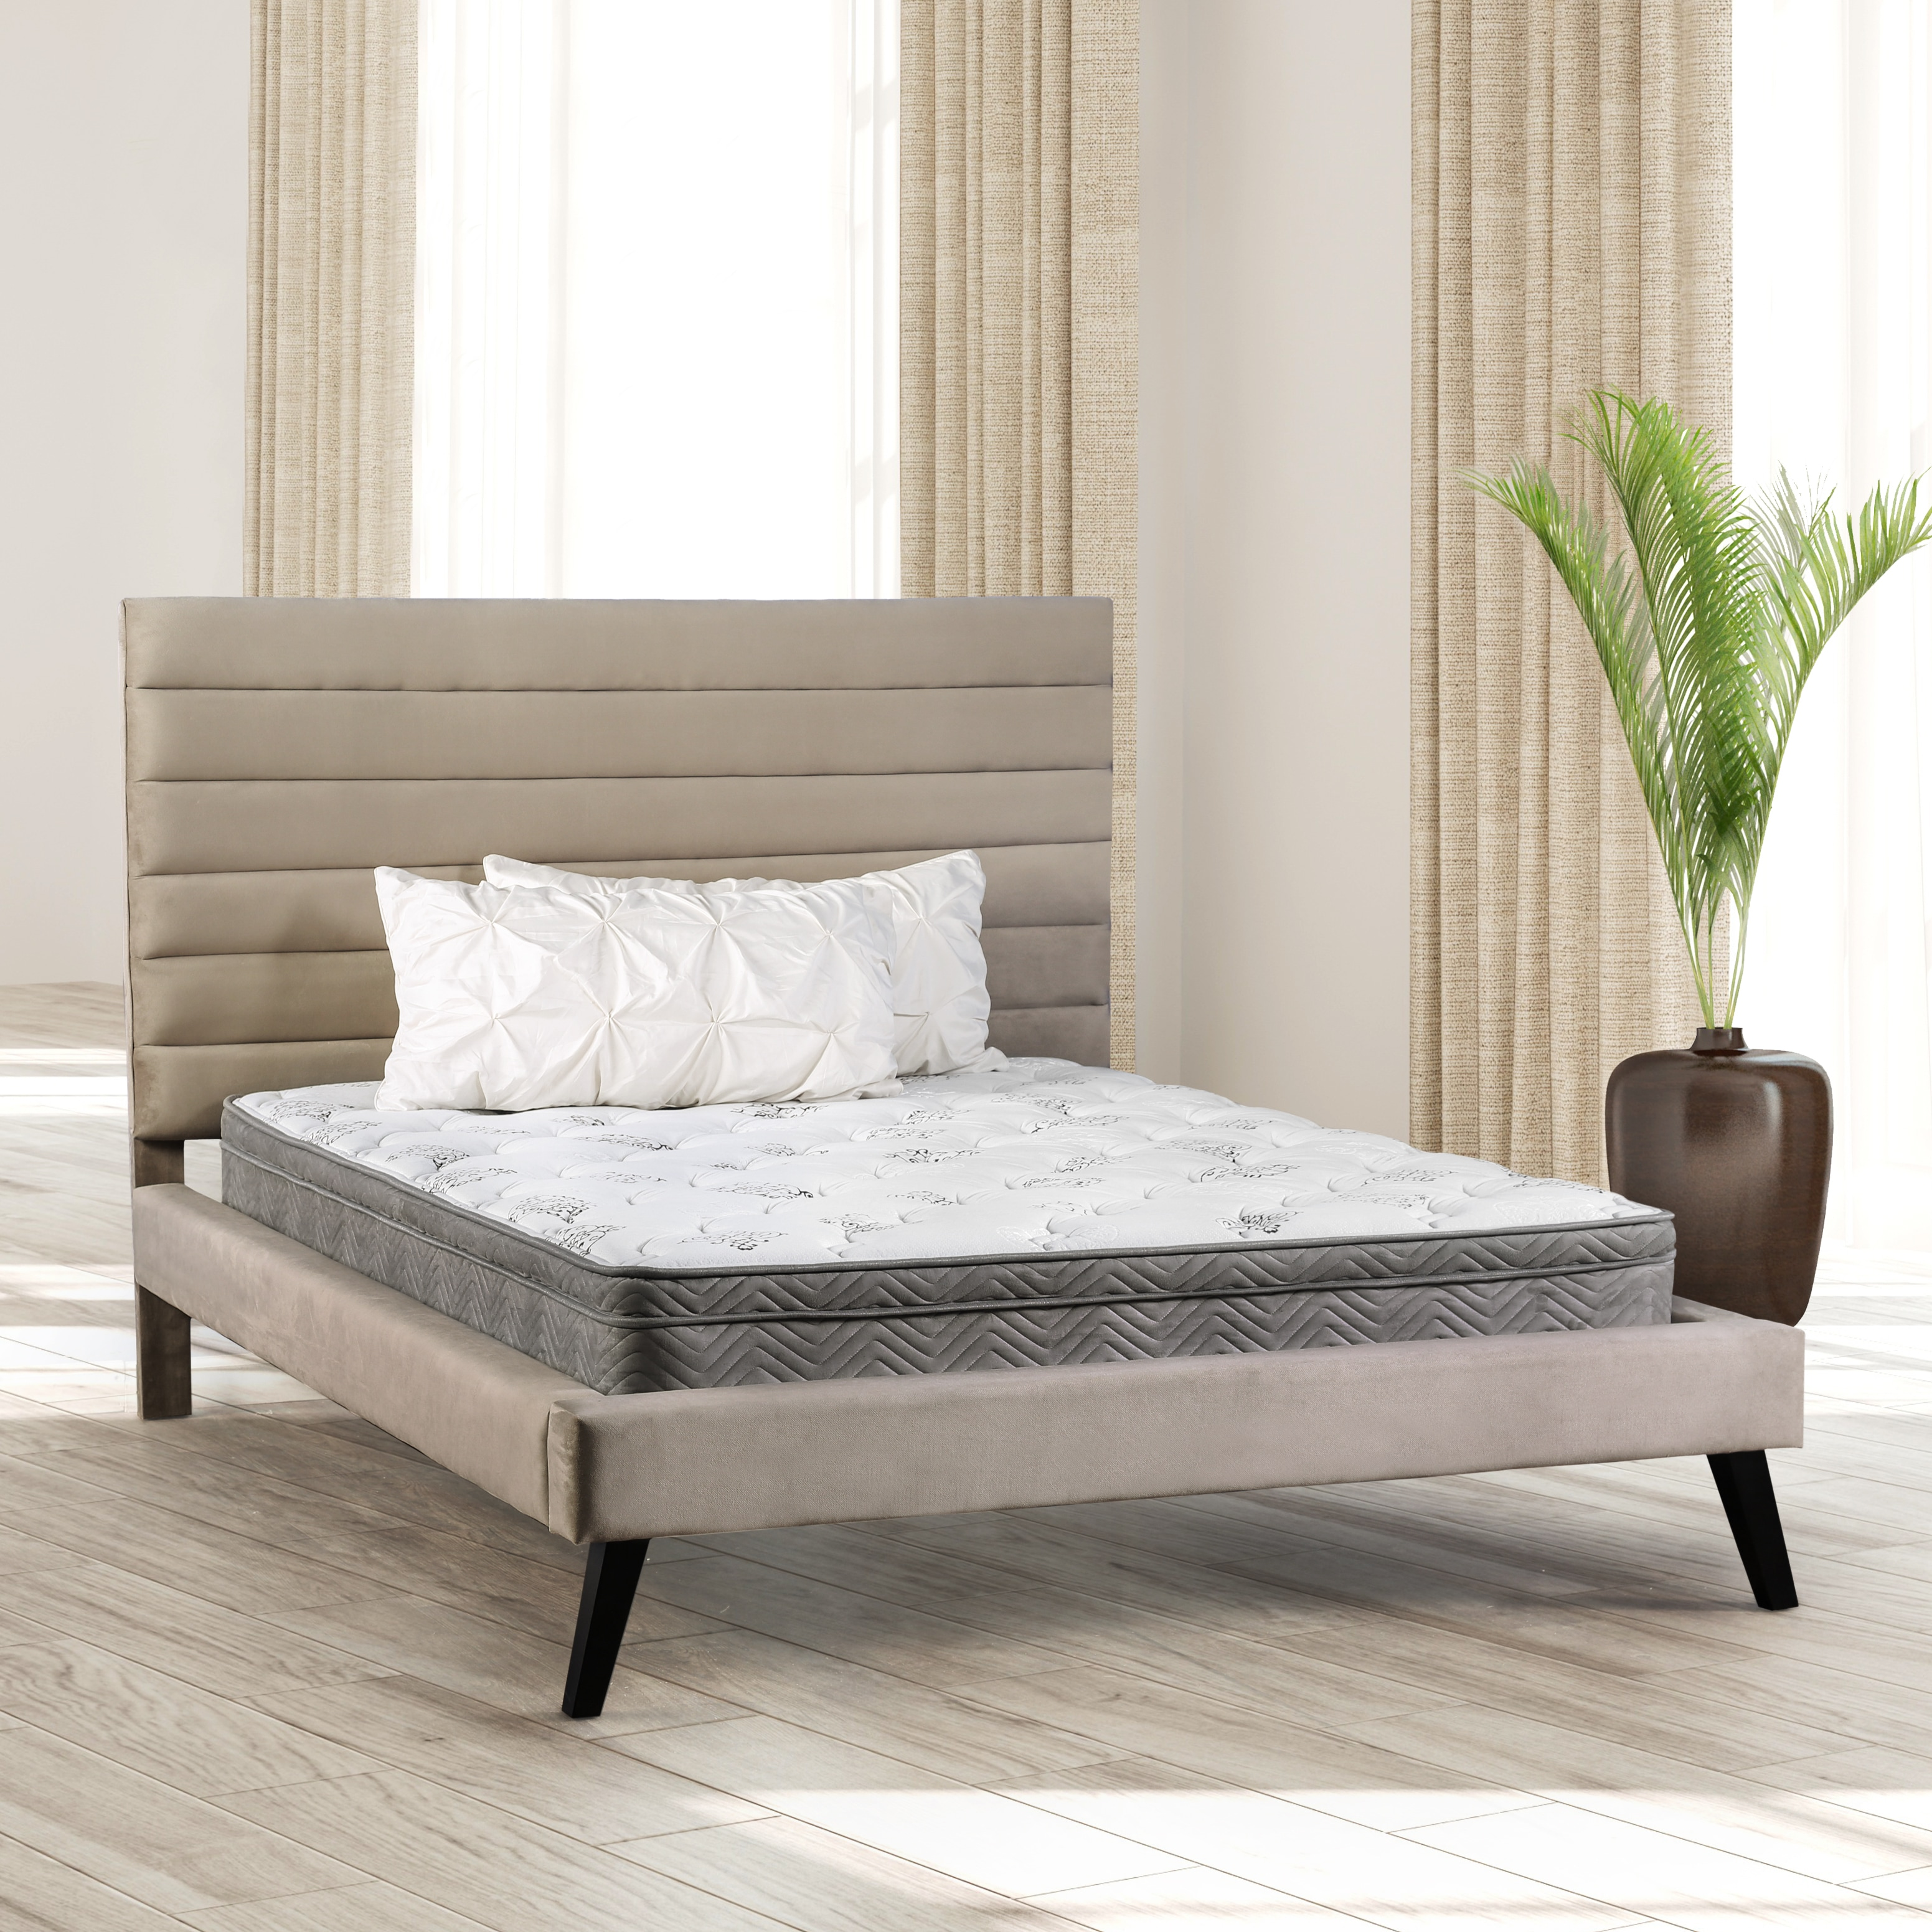 Furniture of America miBasics 11-inch Euro Top California King-size Mattress